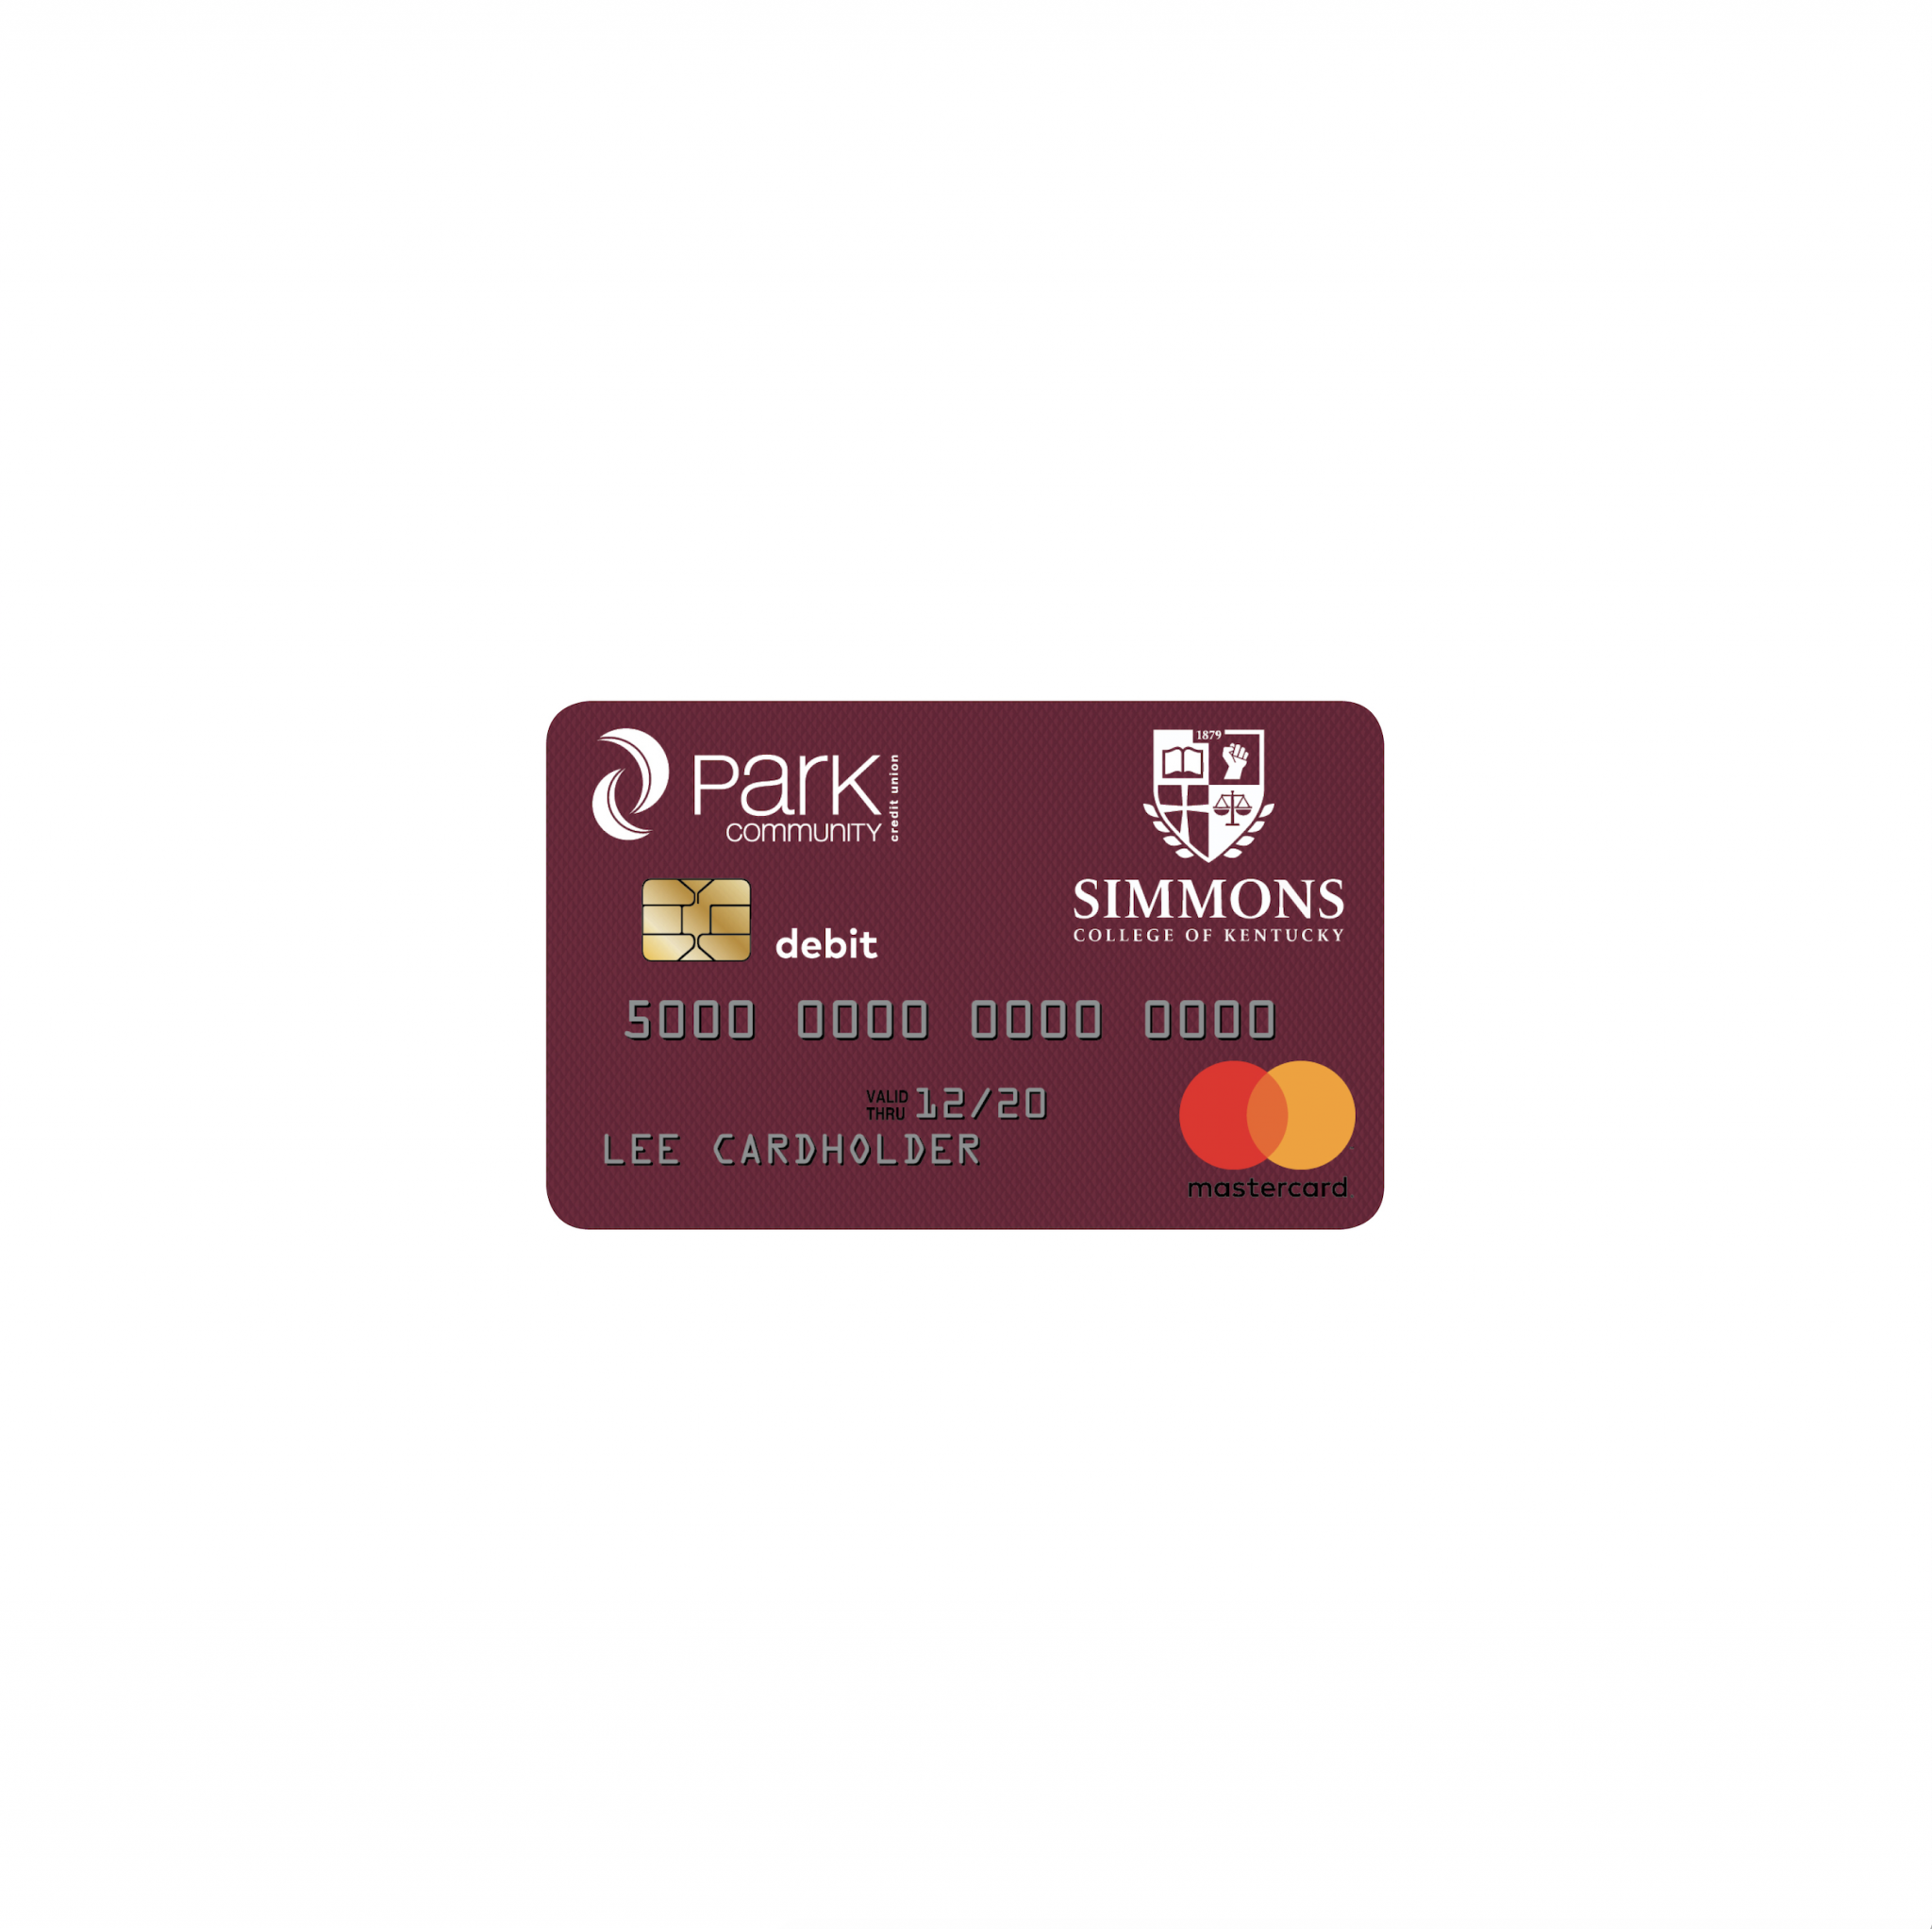 Photo of co-branded debit card